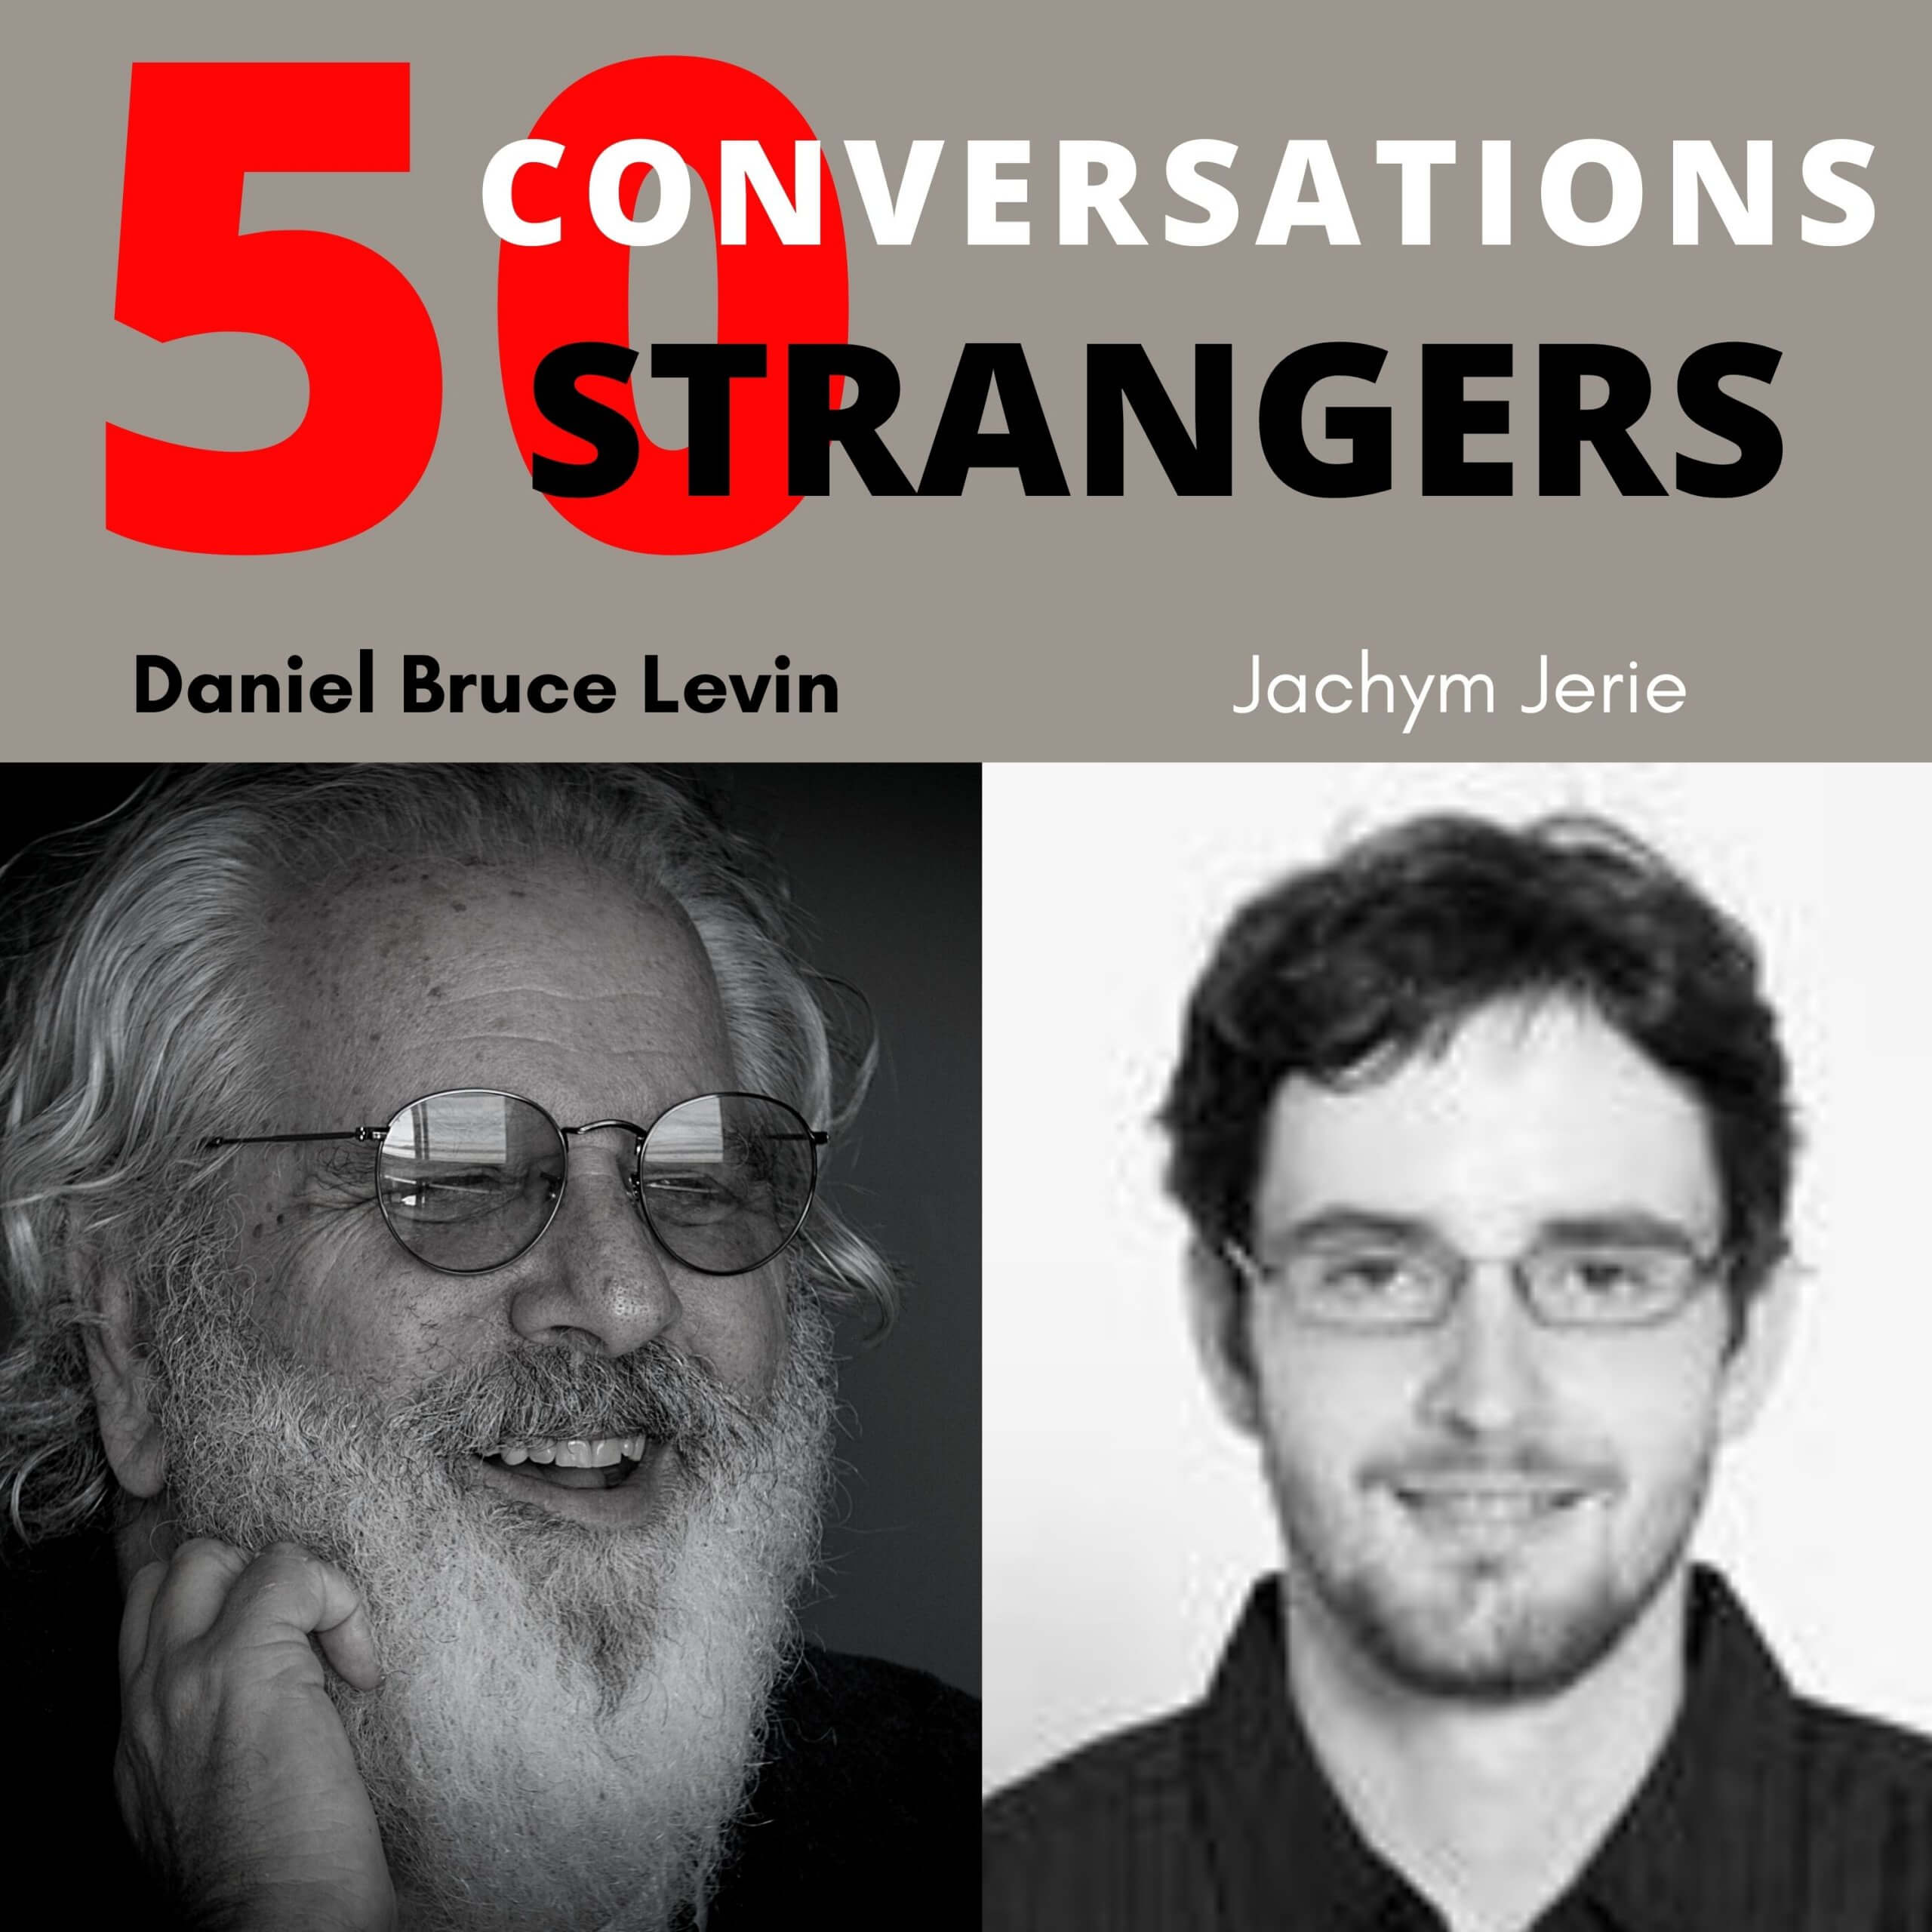 50 Conversations with 50 Strangers with Jachym Jerie